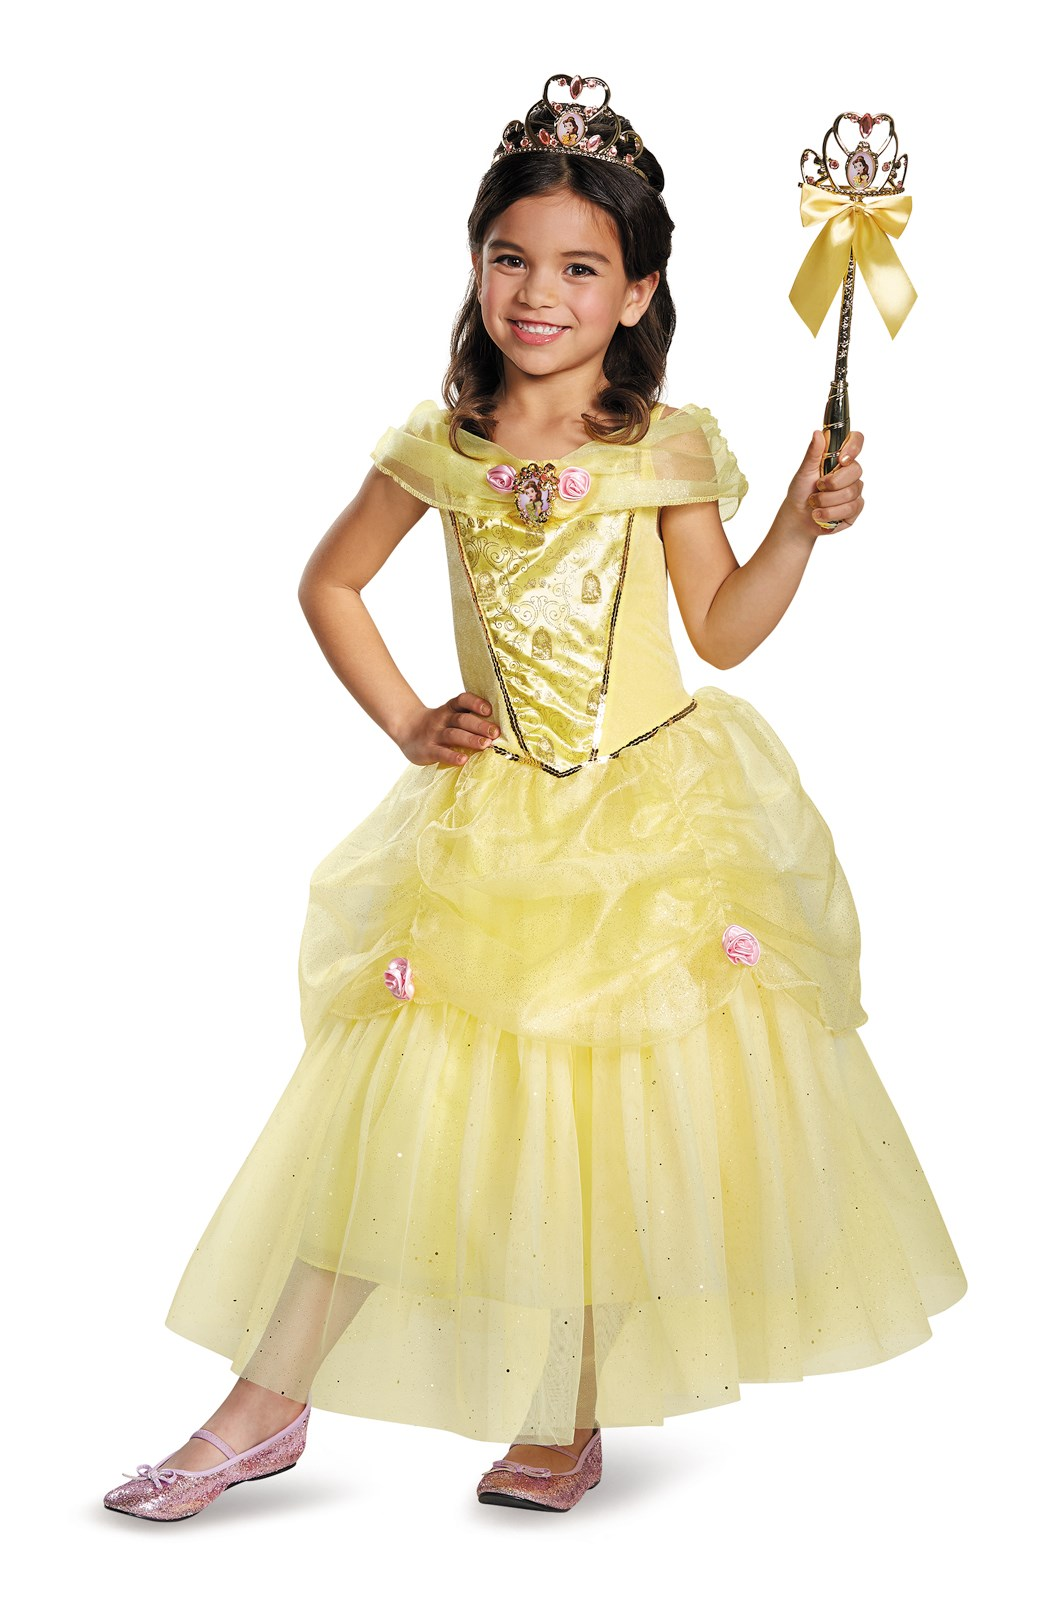 Disney Belle Deluxe Sparkle Toddler / Child Costume 7-8